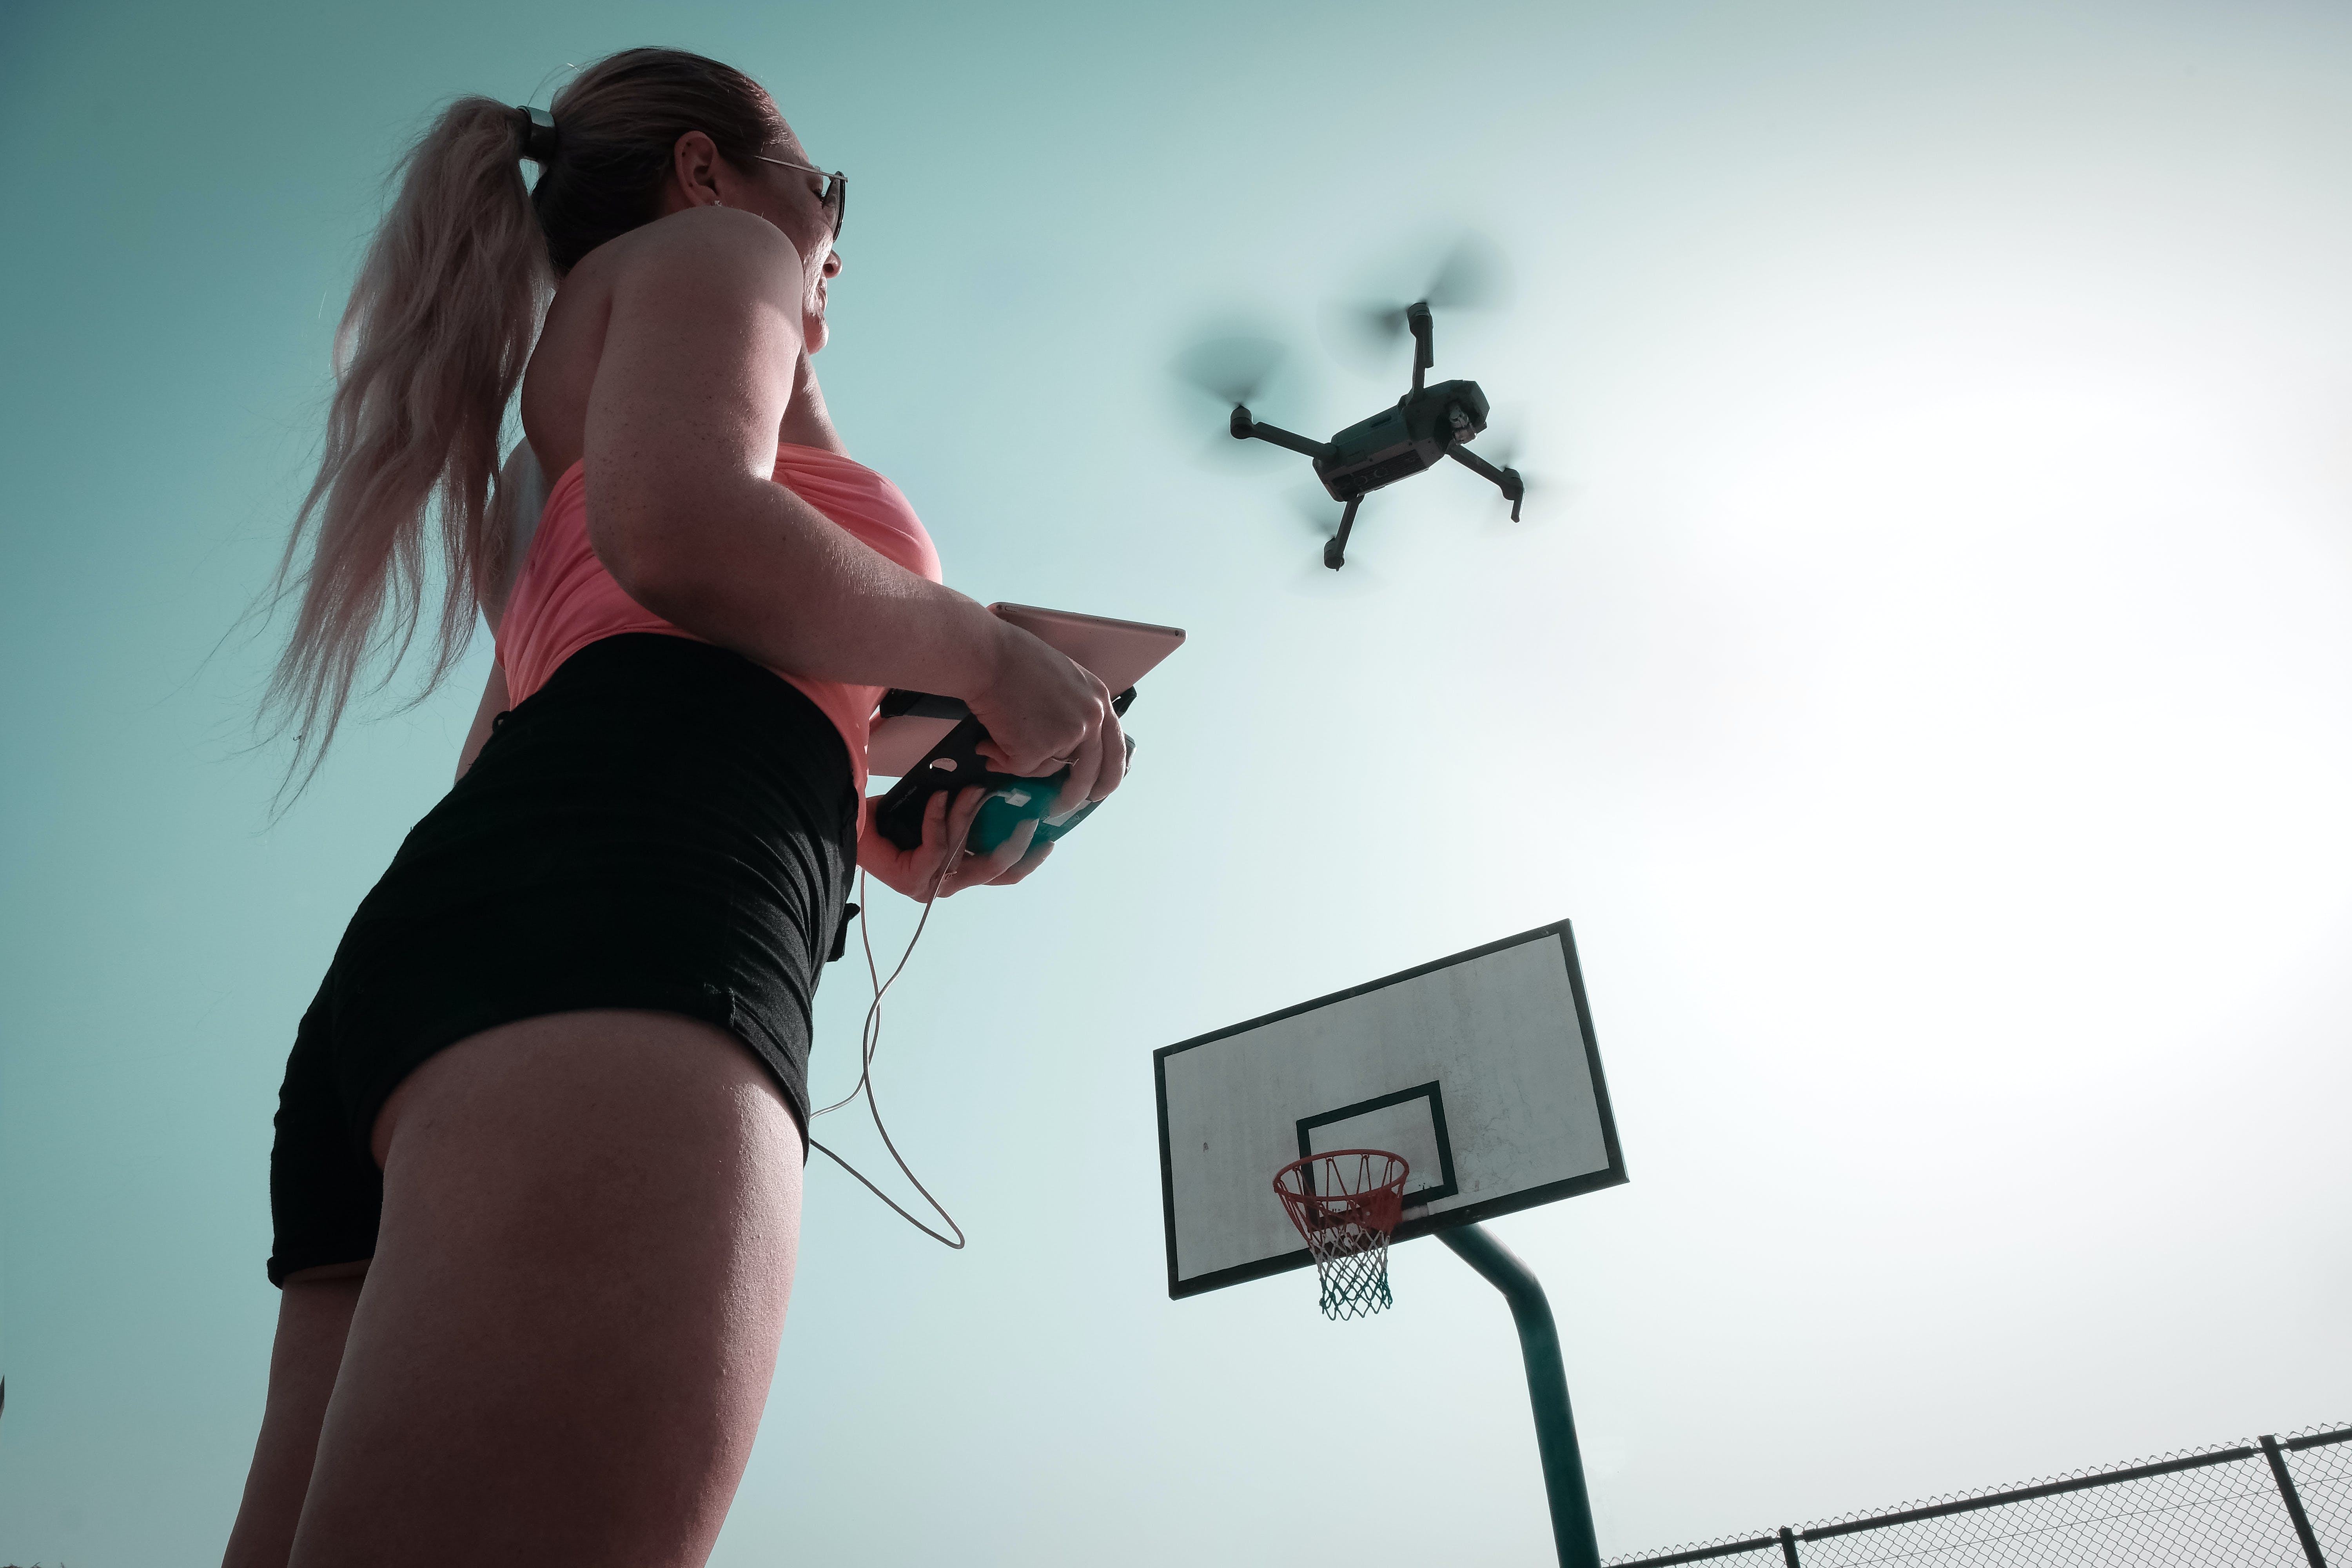 Free stock photo of person, flying, woman, camera